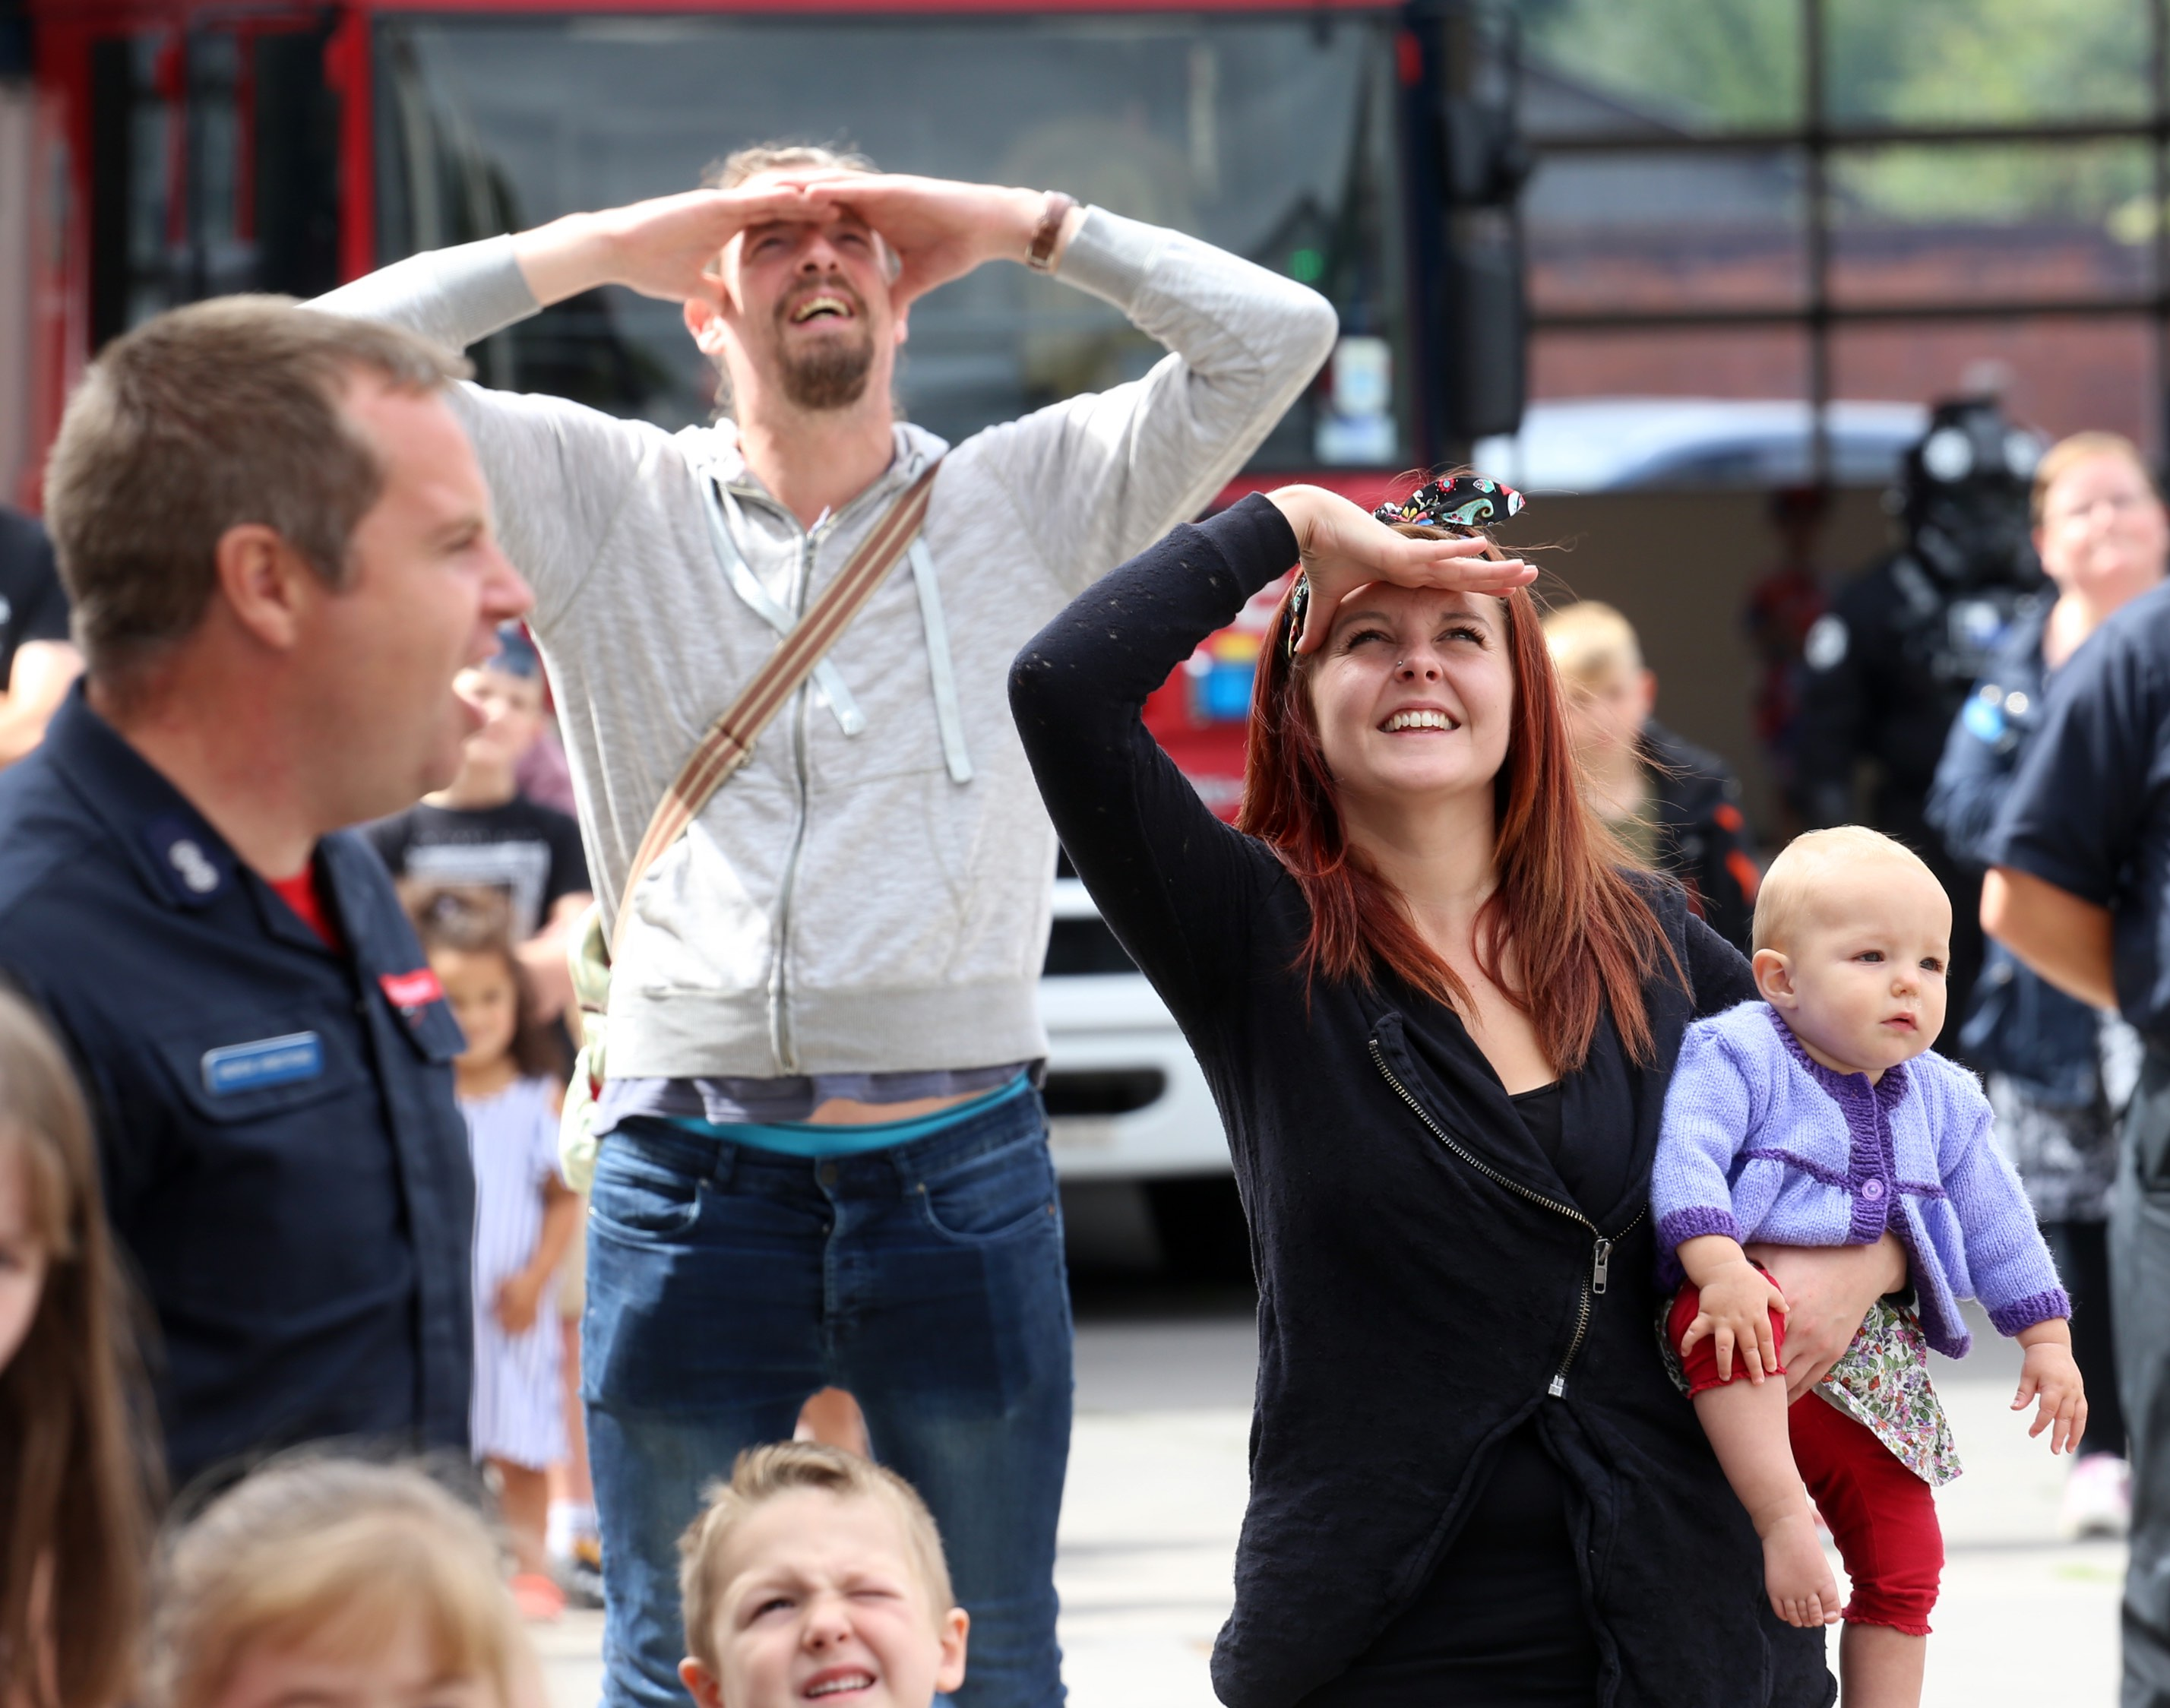 Visitors to the open day watch the ALP in action above Shrewsbury Fire Station